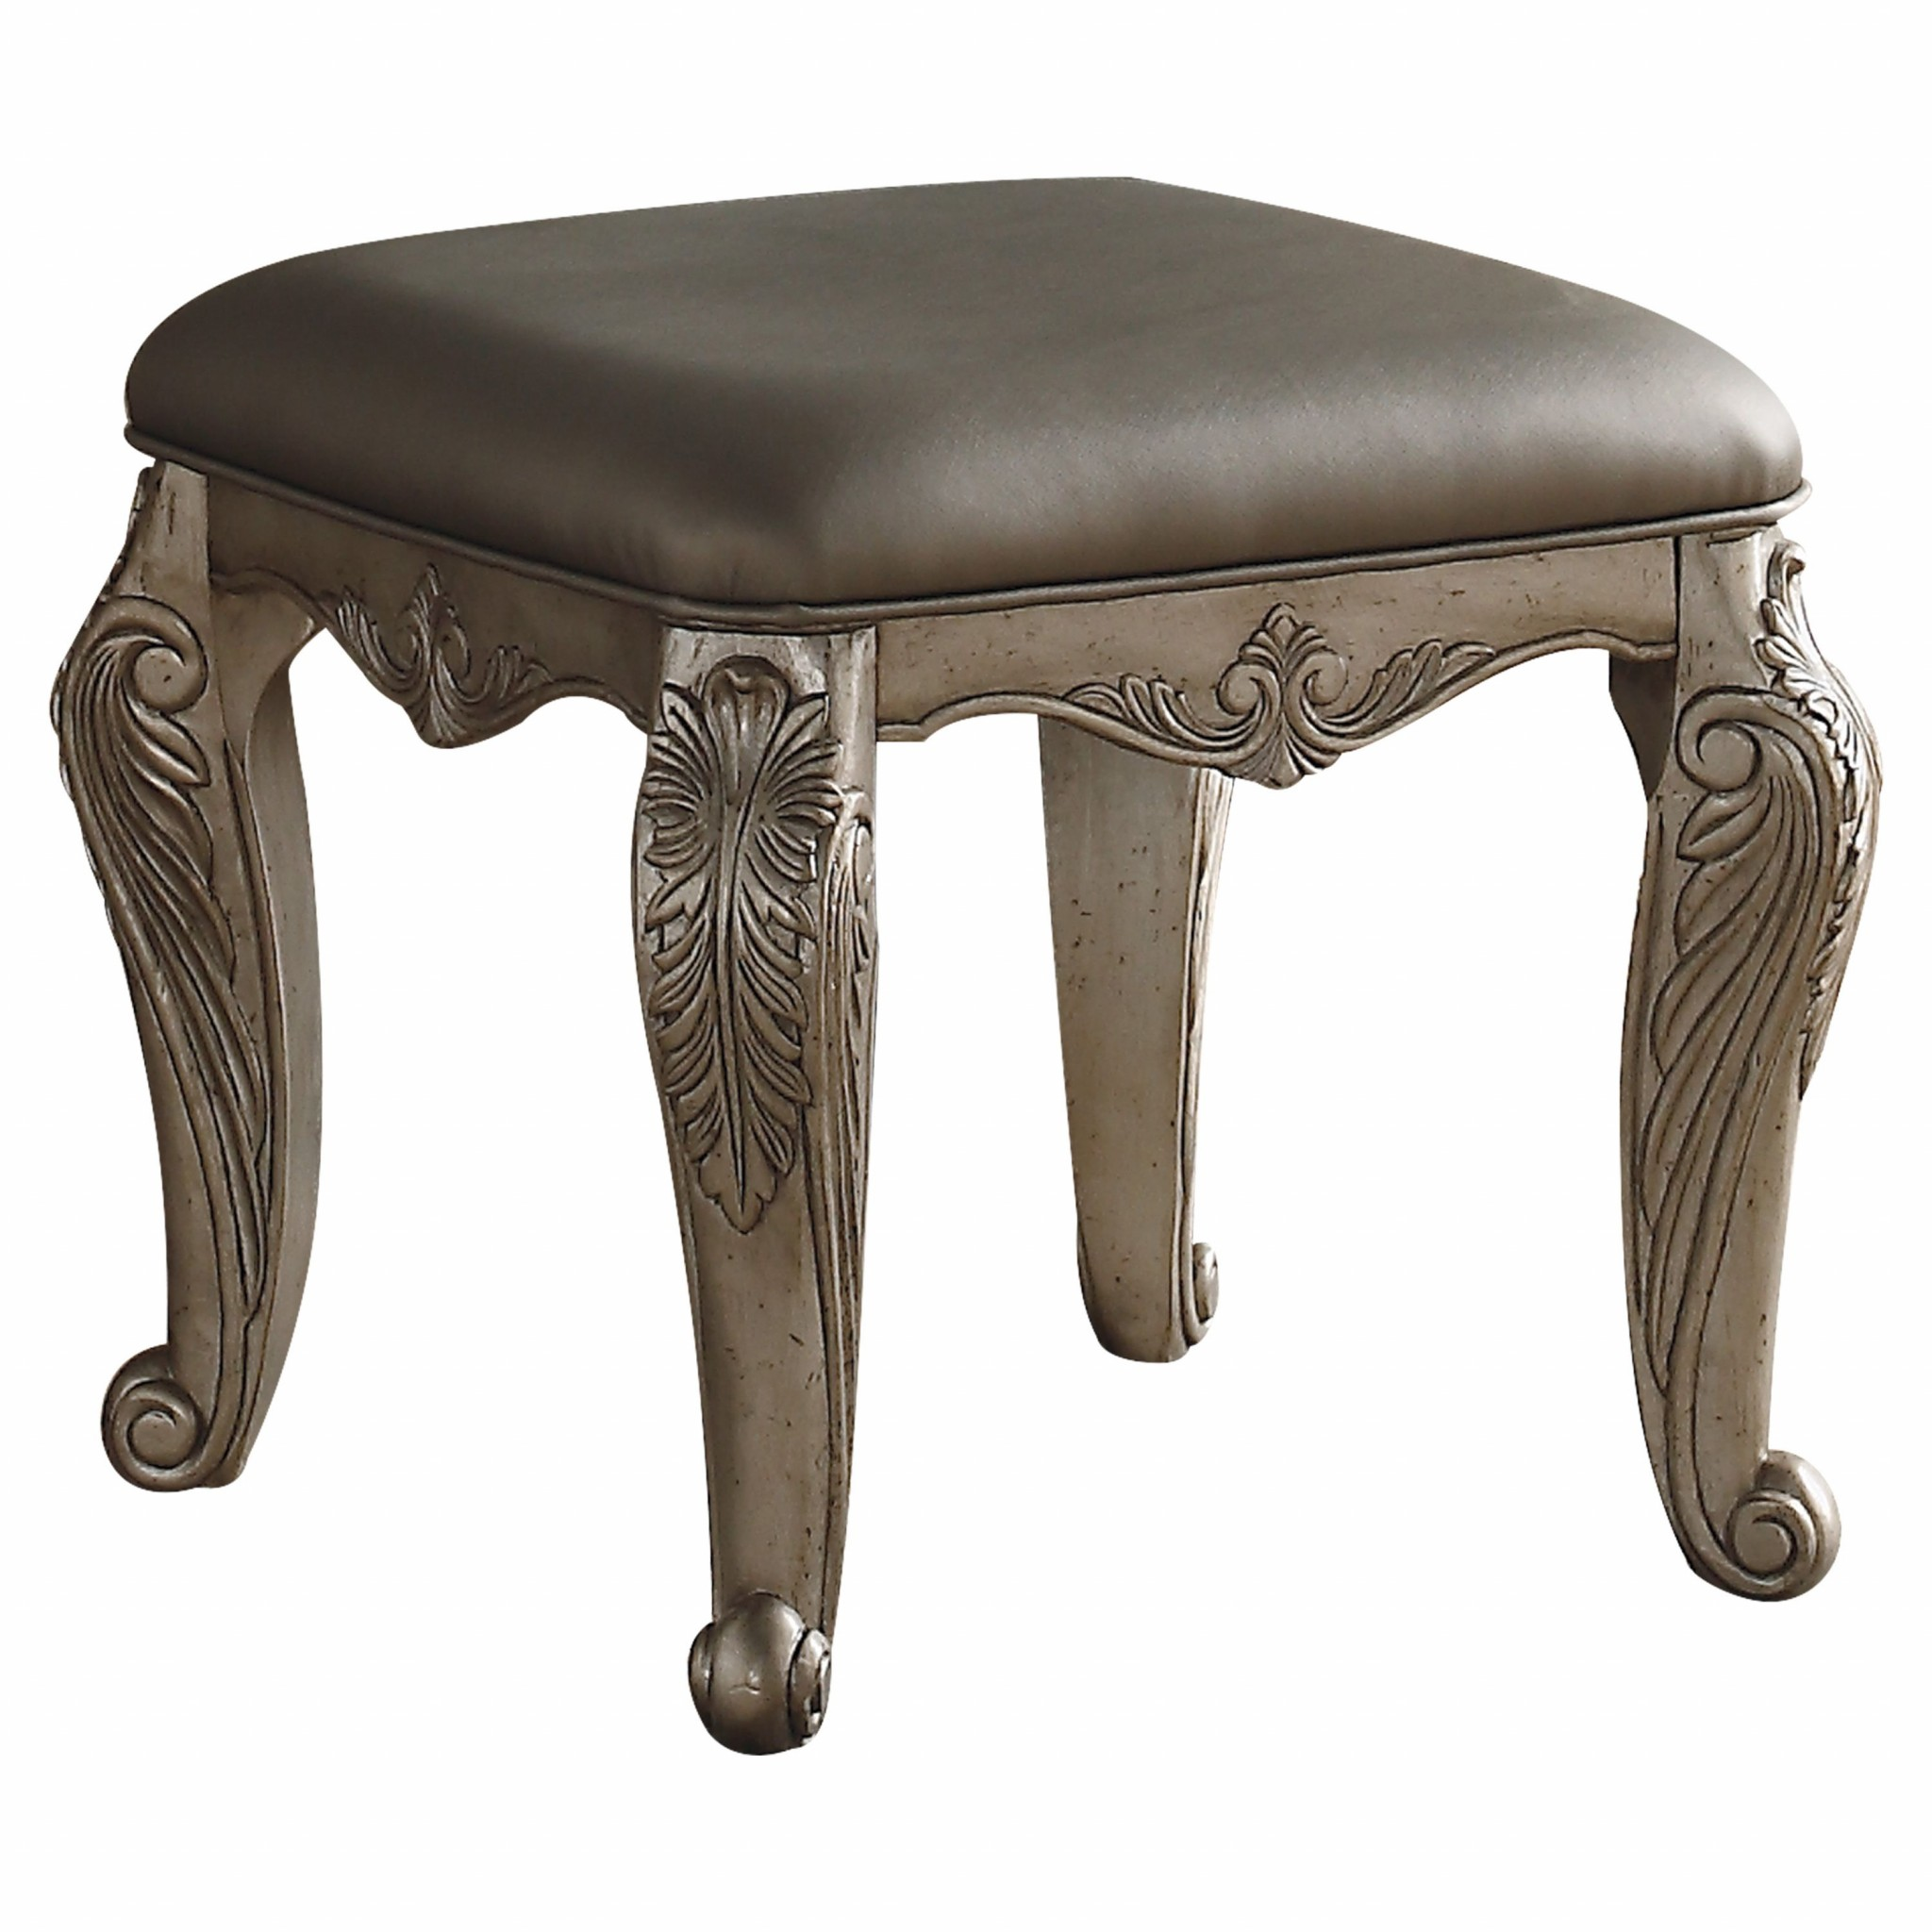 Swell 20 X 20 X 19 Antique Champagne Pu Vanity Stool Pdpeps Interior Chair Design Pdpepsorg